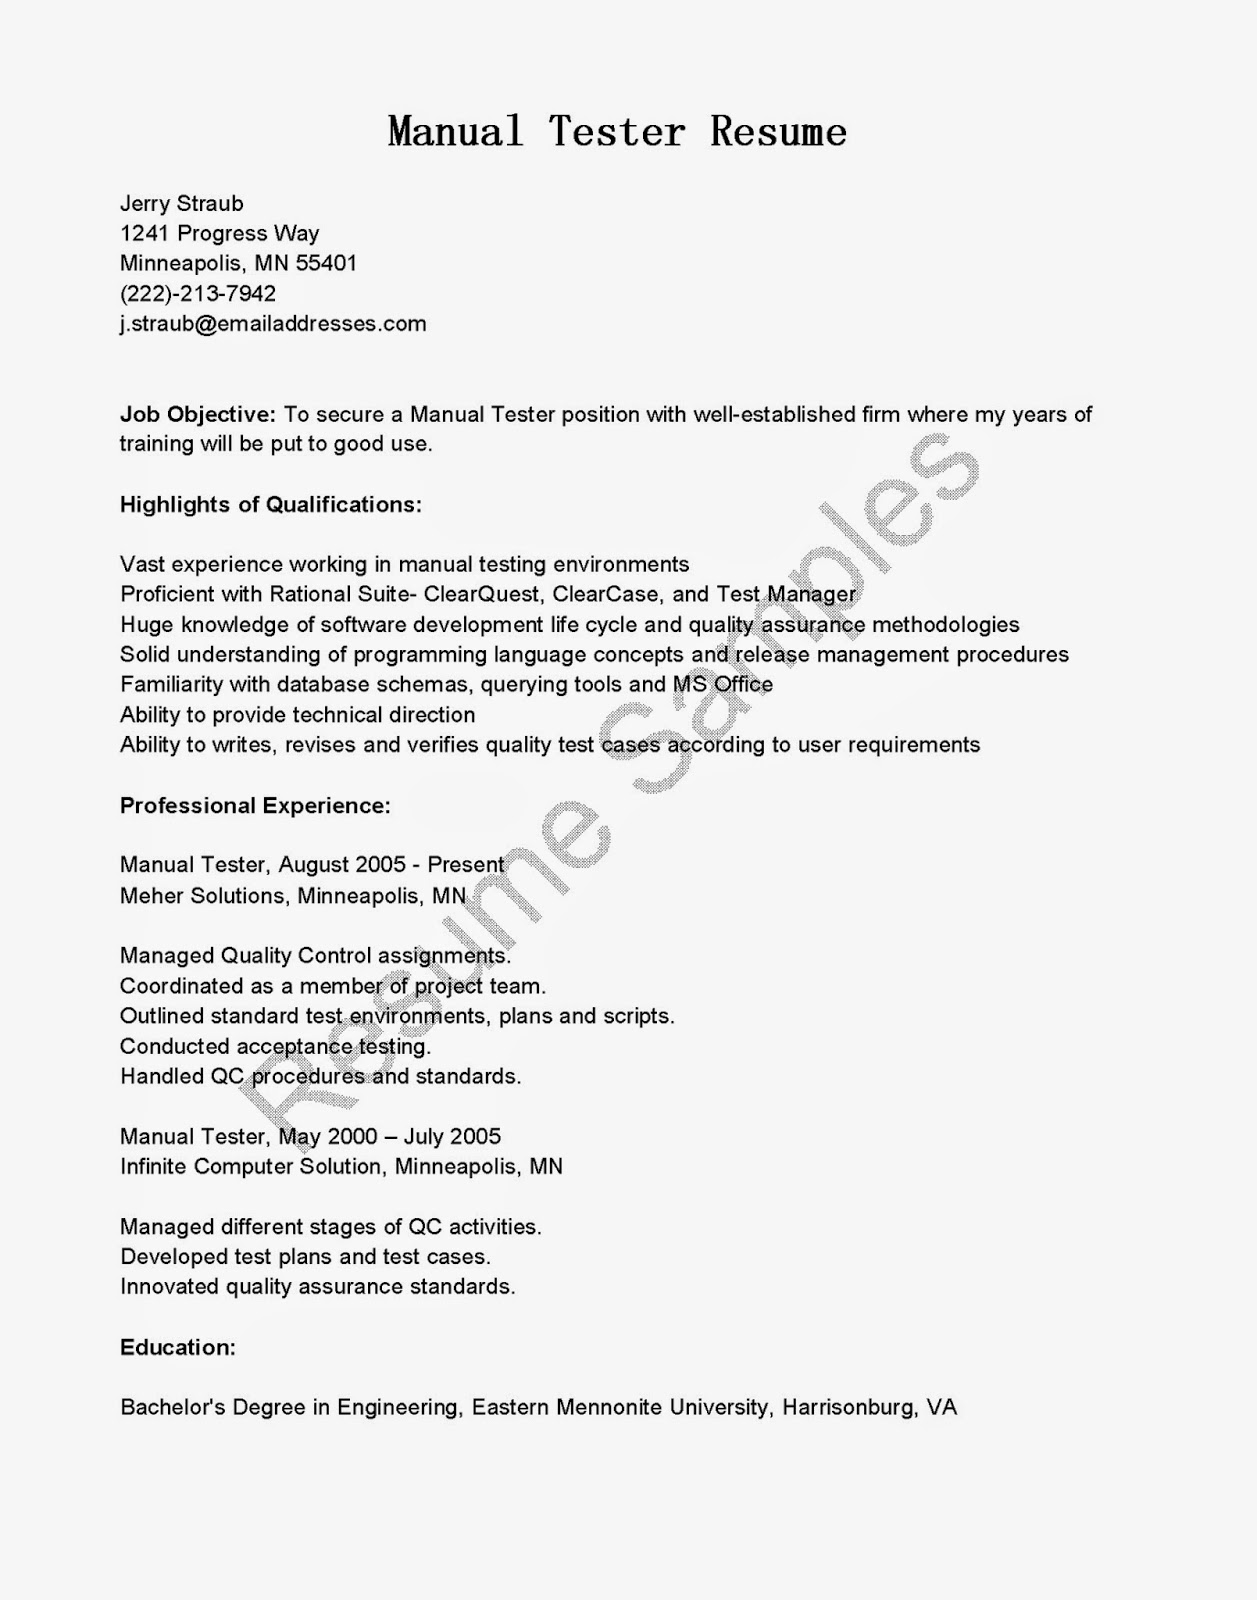 sample resume for 3 years experience in manual testing - resume samples manual tester resume sample